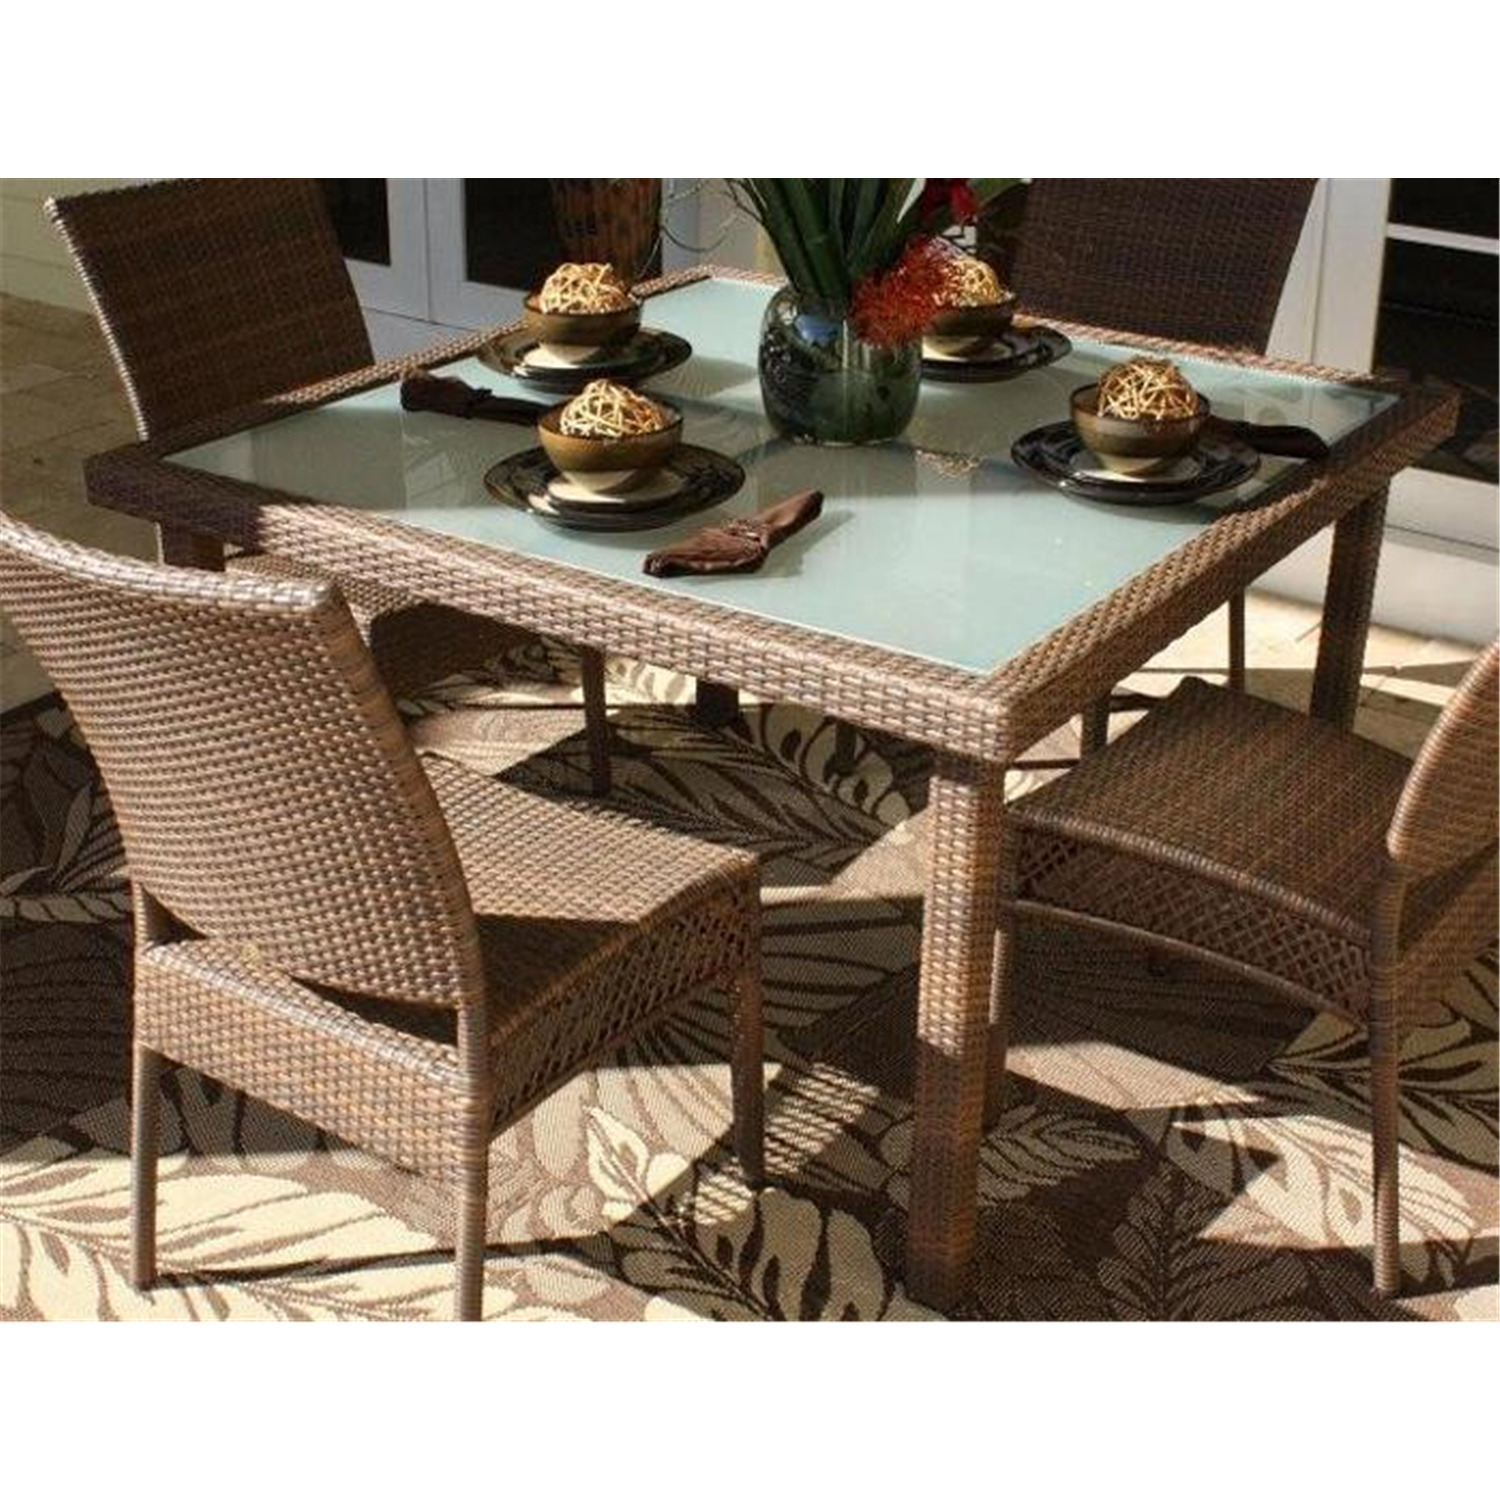 patio 48 square dining table by oj commerce 604 3392 vir. Black Bedroom Furniture Sets. Home Design Ideas